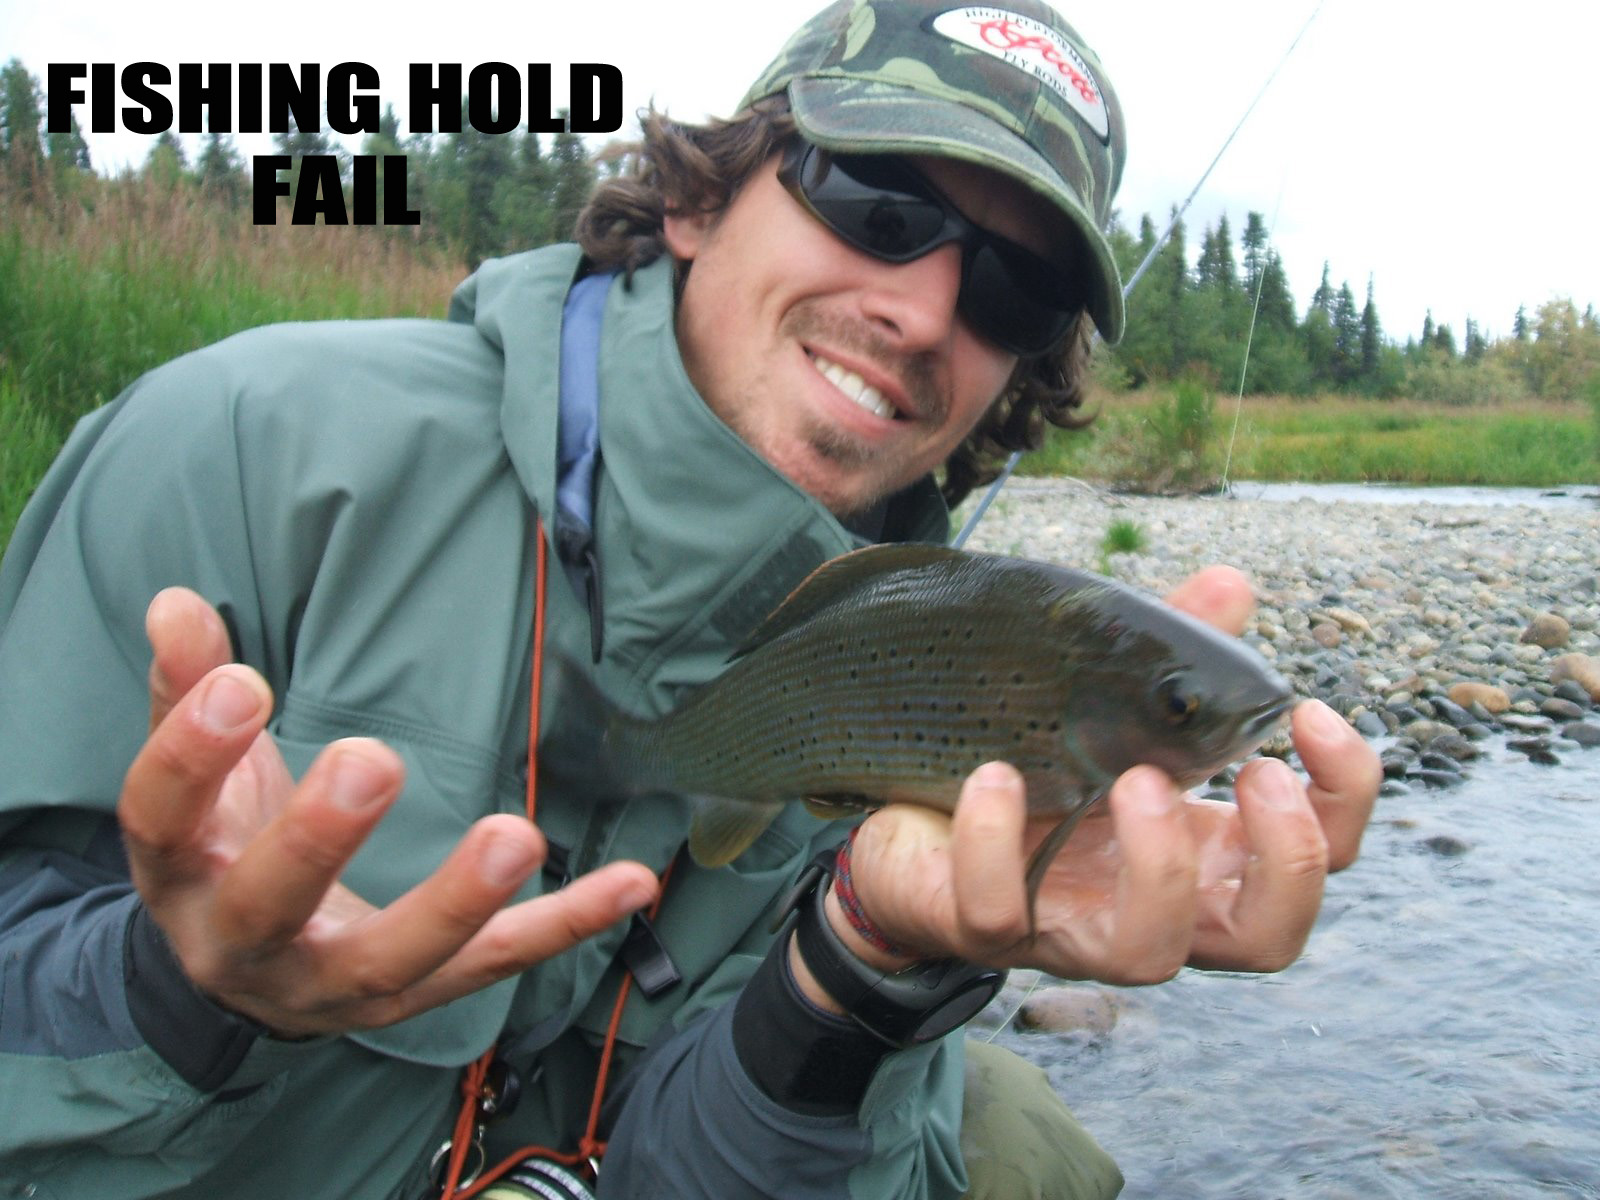 2011 Fishing Fails Fishing Fail Fishing Hold